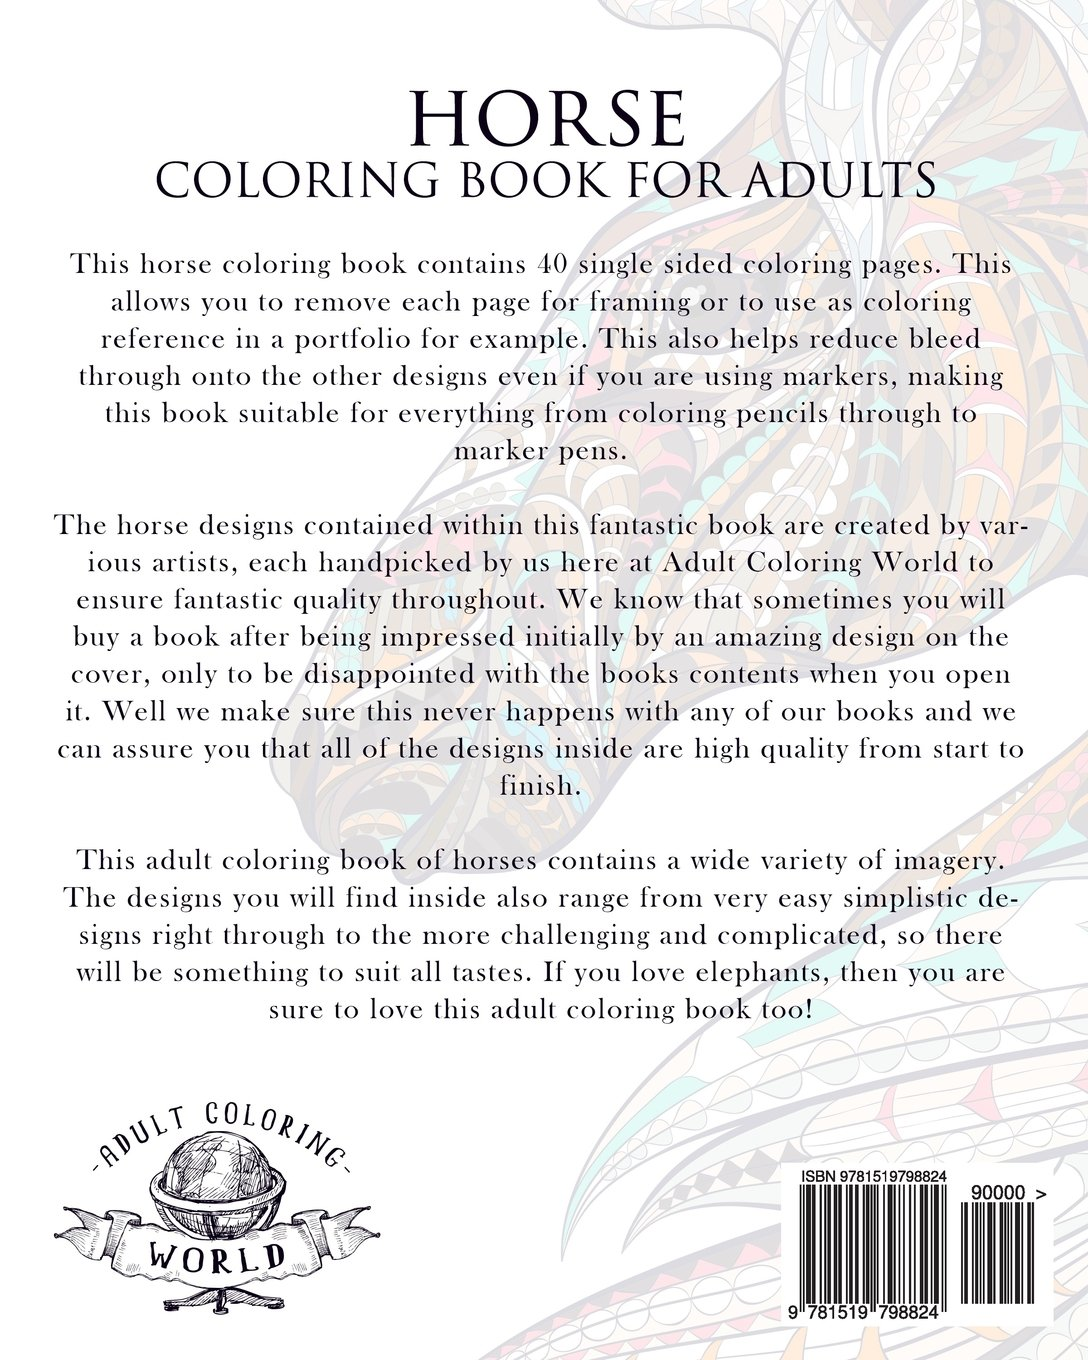 Amazon.com: Horse Coloring Book For Adults: An Adult ...